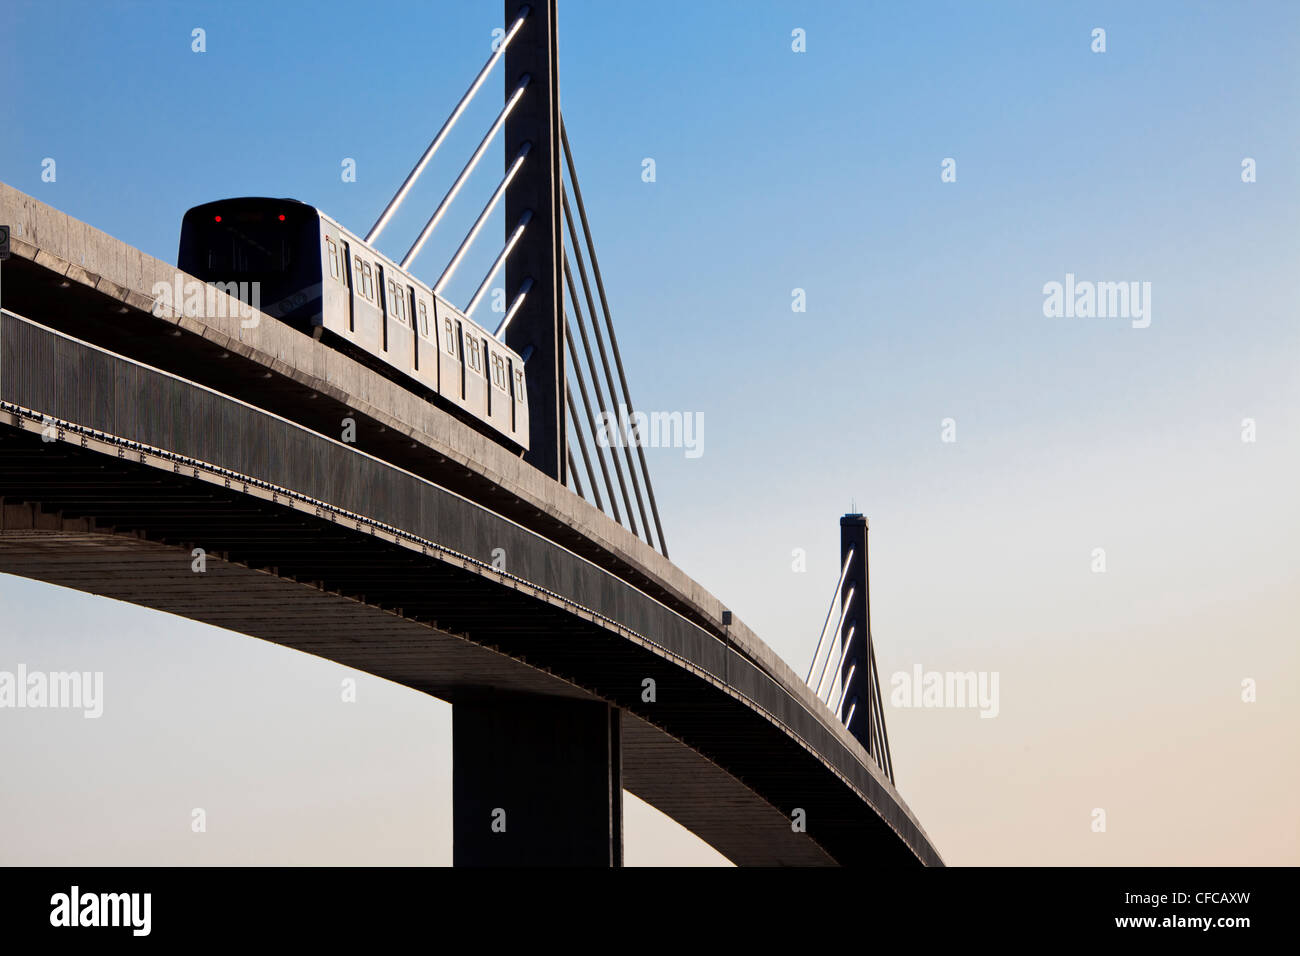 The CanadLine light rapid transit linking Stock Photo